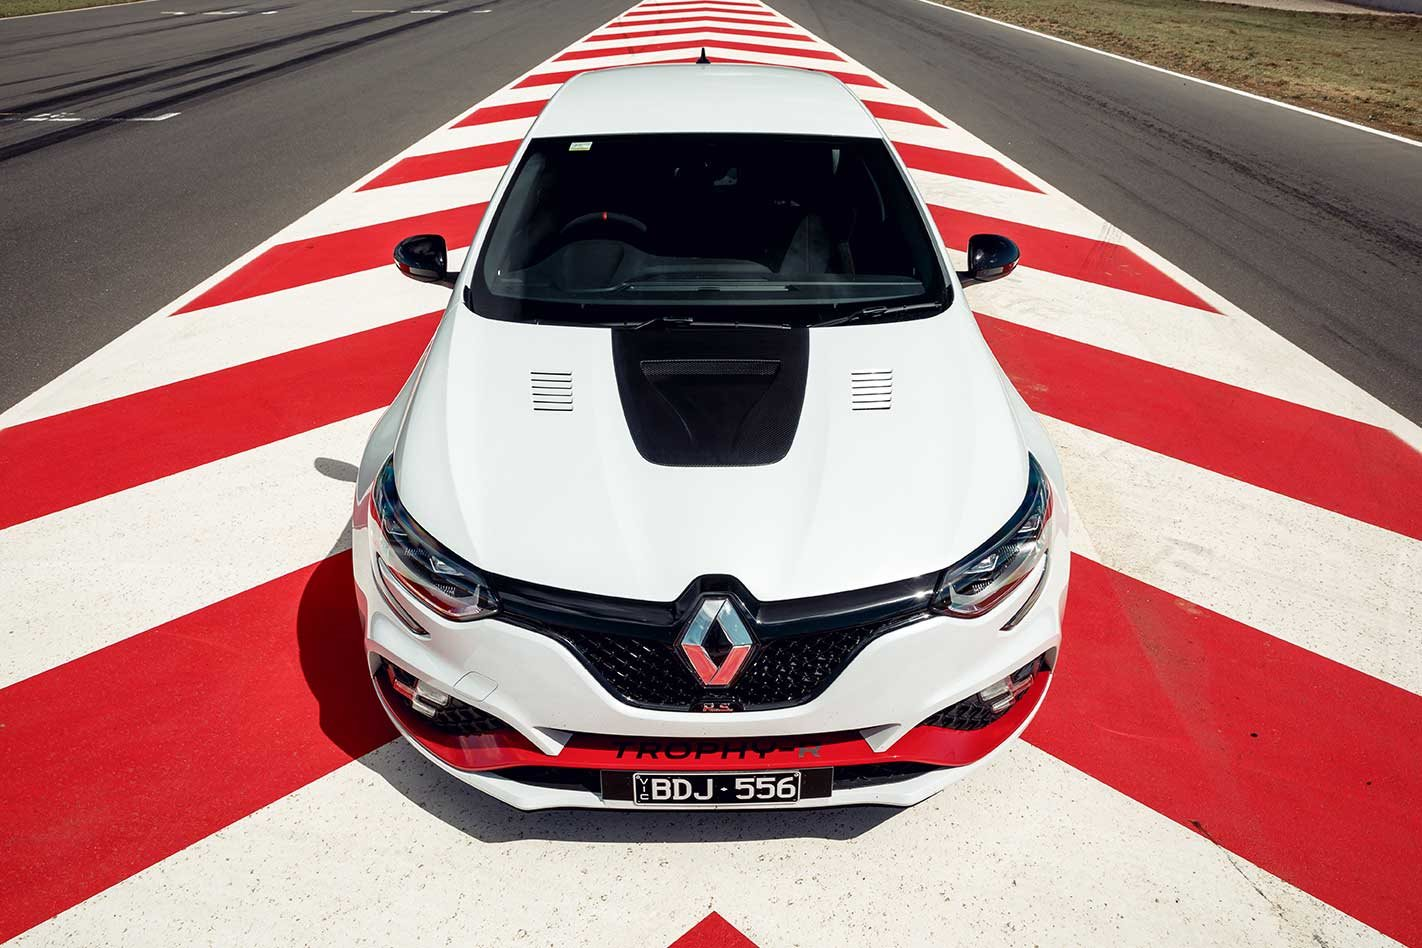 Renault Megane Trophy-R acceleration figures tested